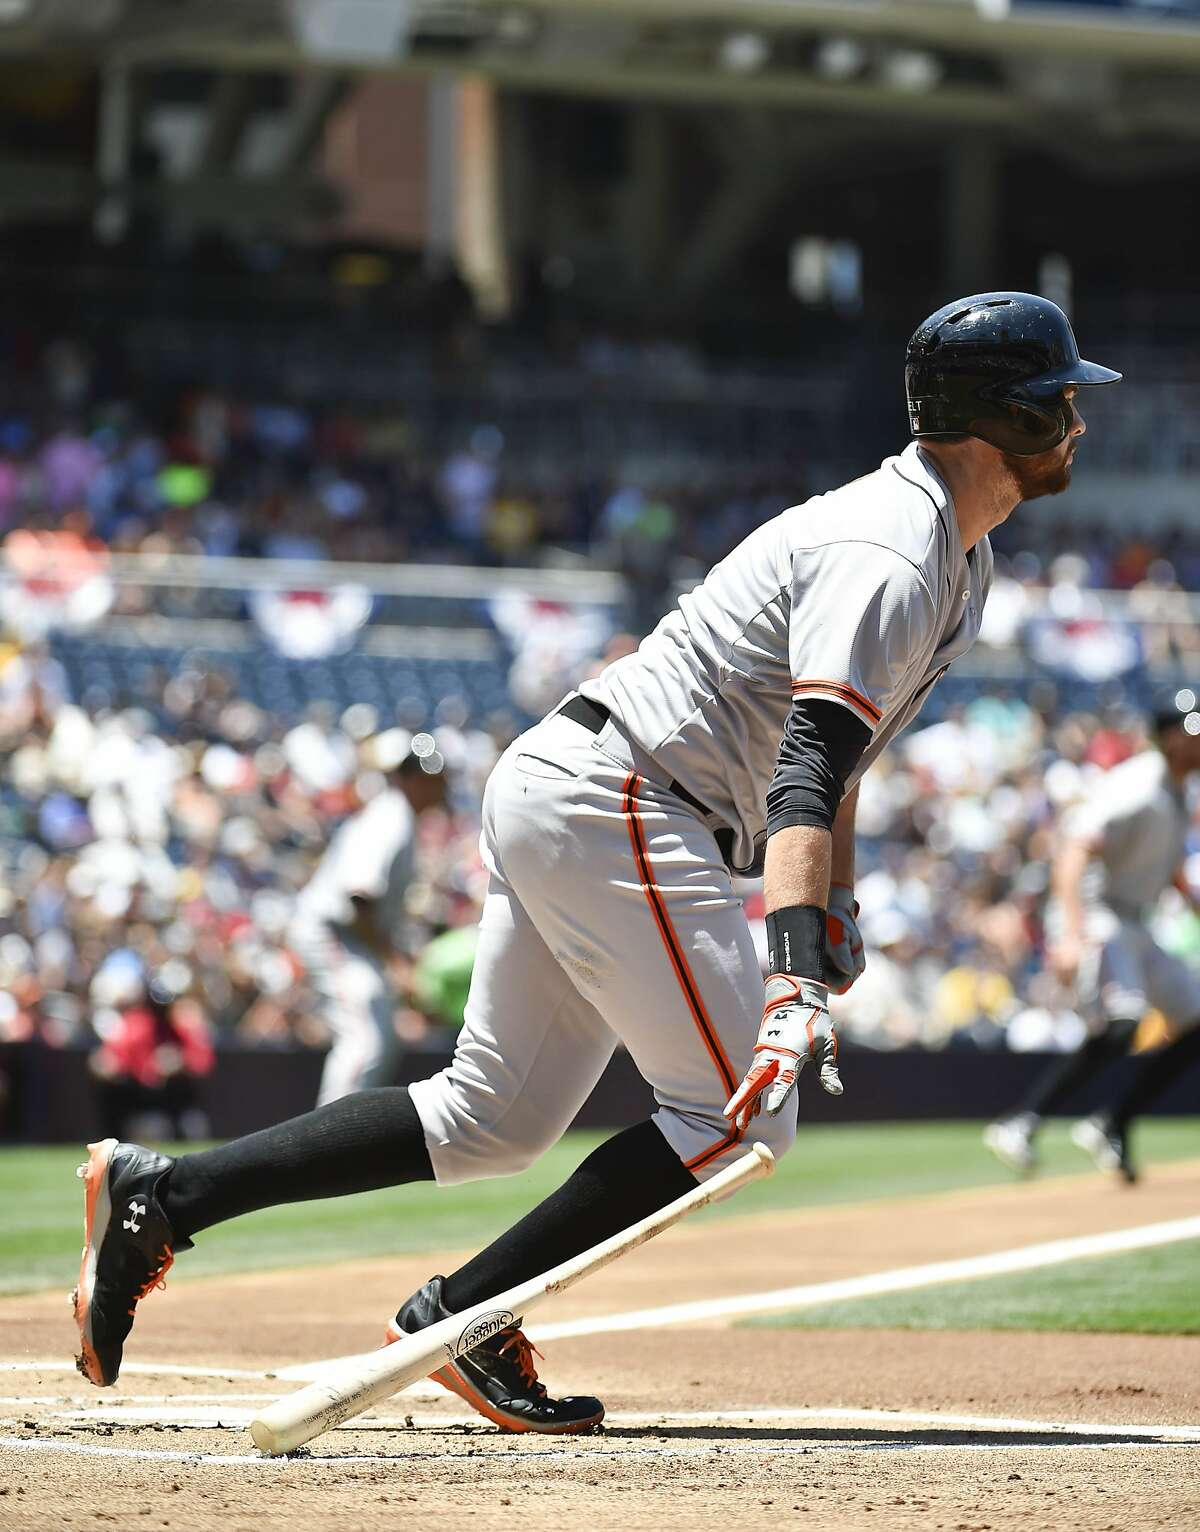 SAN DIEGO, CA - JULY 6: Brandon Belt #9 of the San Francisco Giants hits an RBI single during the first inning of a baseball game against the San Diego Padres at Petco Park July 6, 2014 in San Diego, California. (Photo by Denis Poroy/Getty Images)